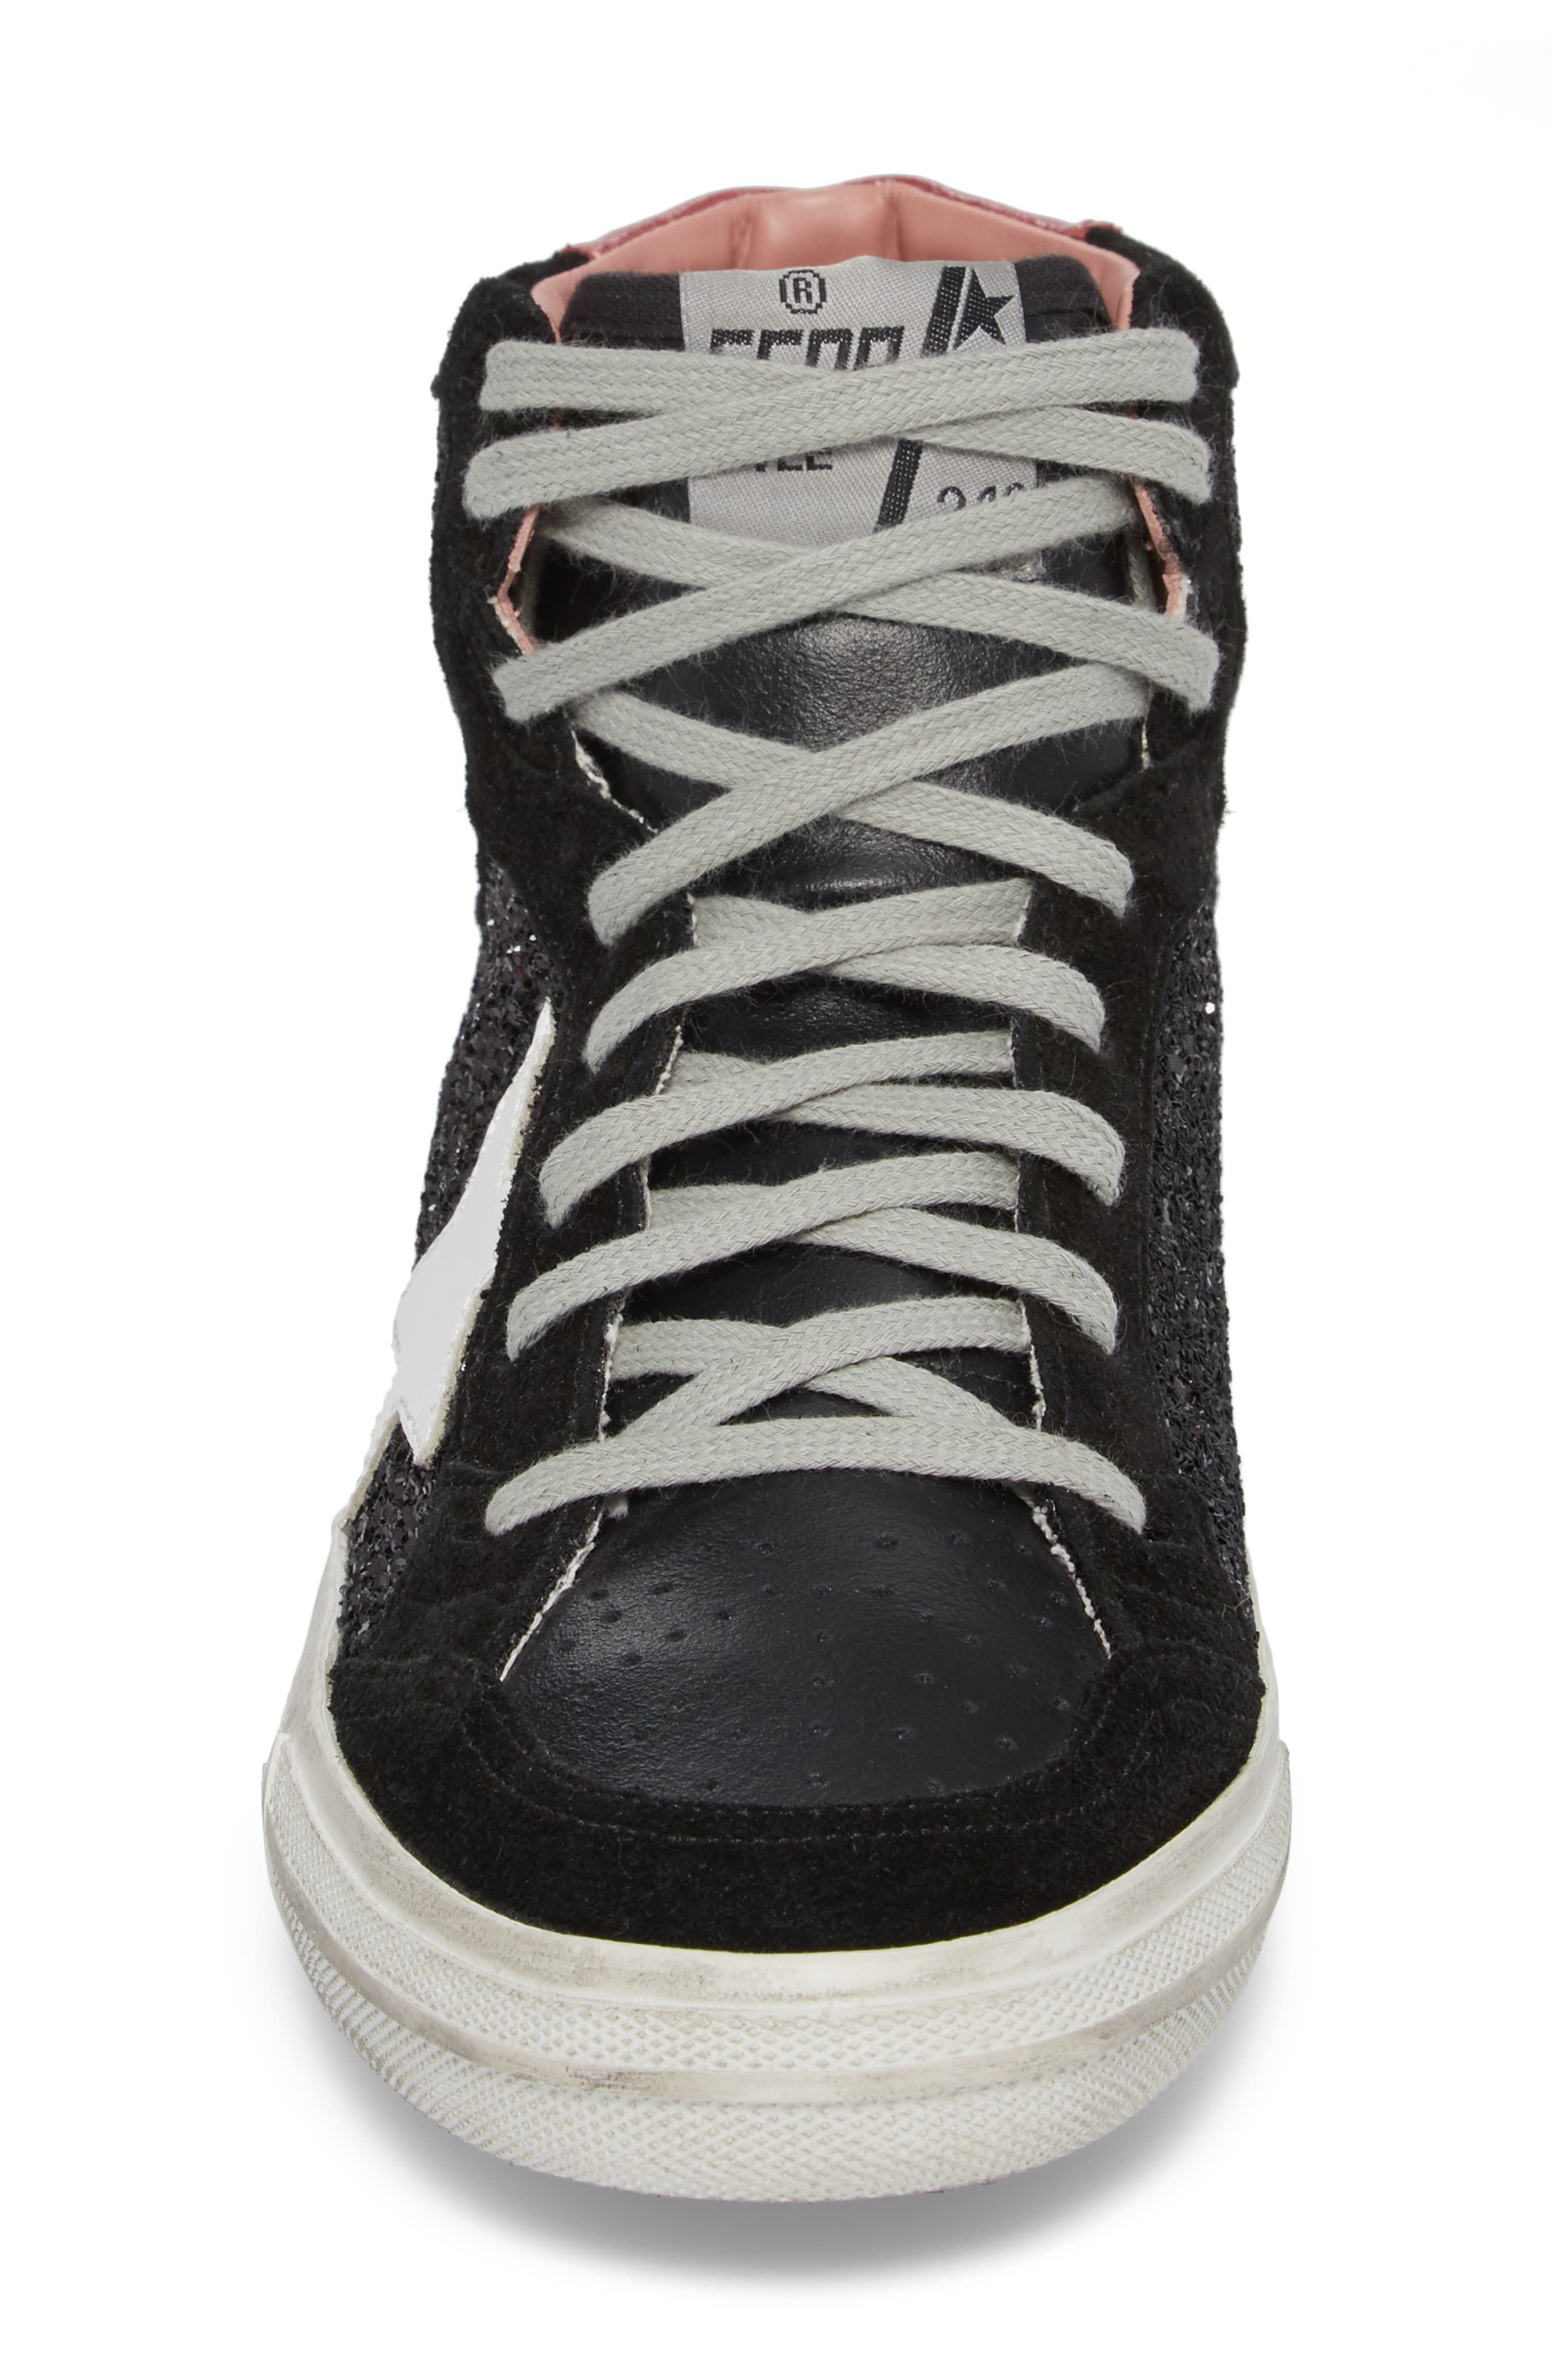 2.12 Star High Top Sneaker,                             Alternate thumbnail 3, color,                             Black